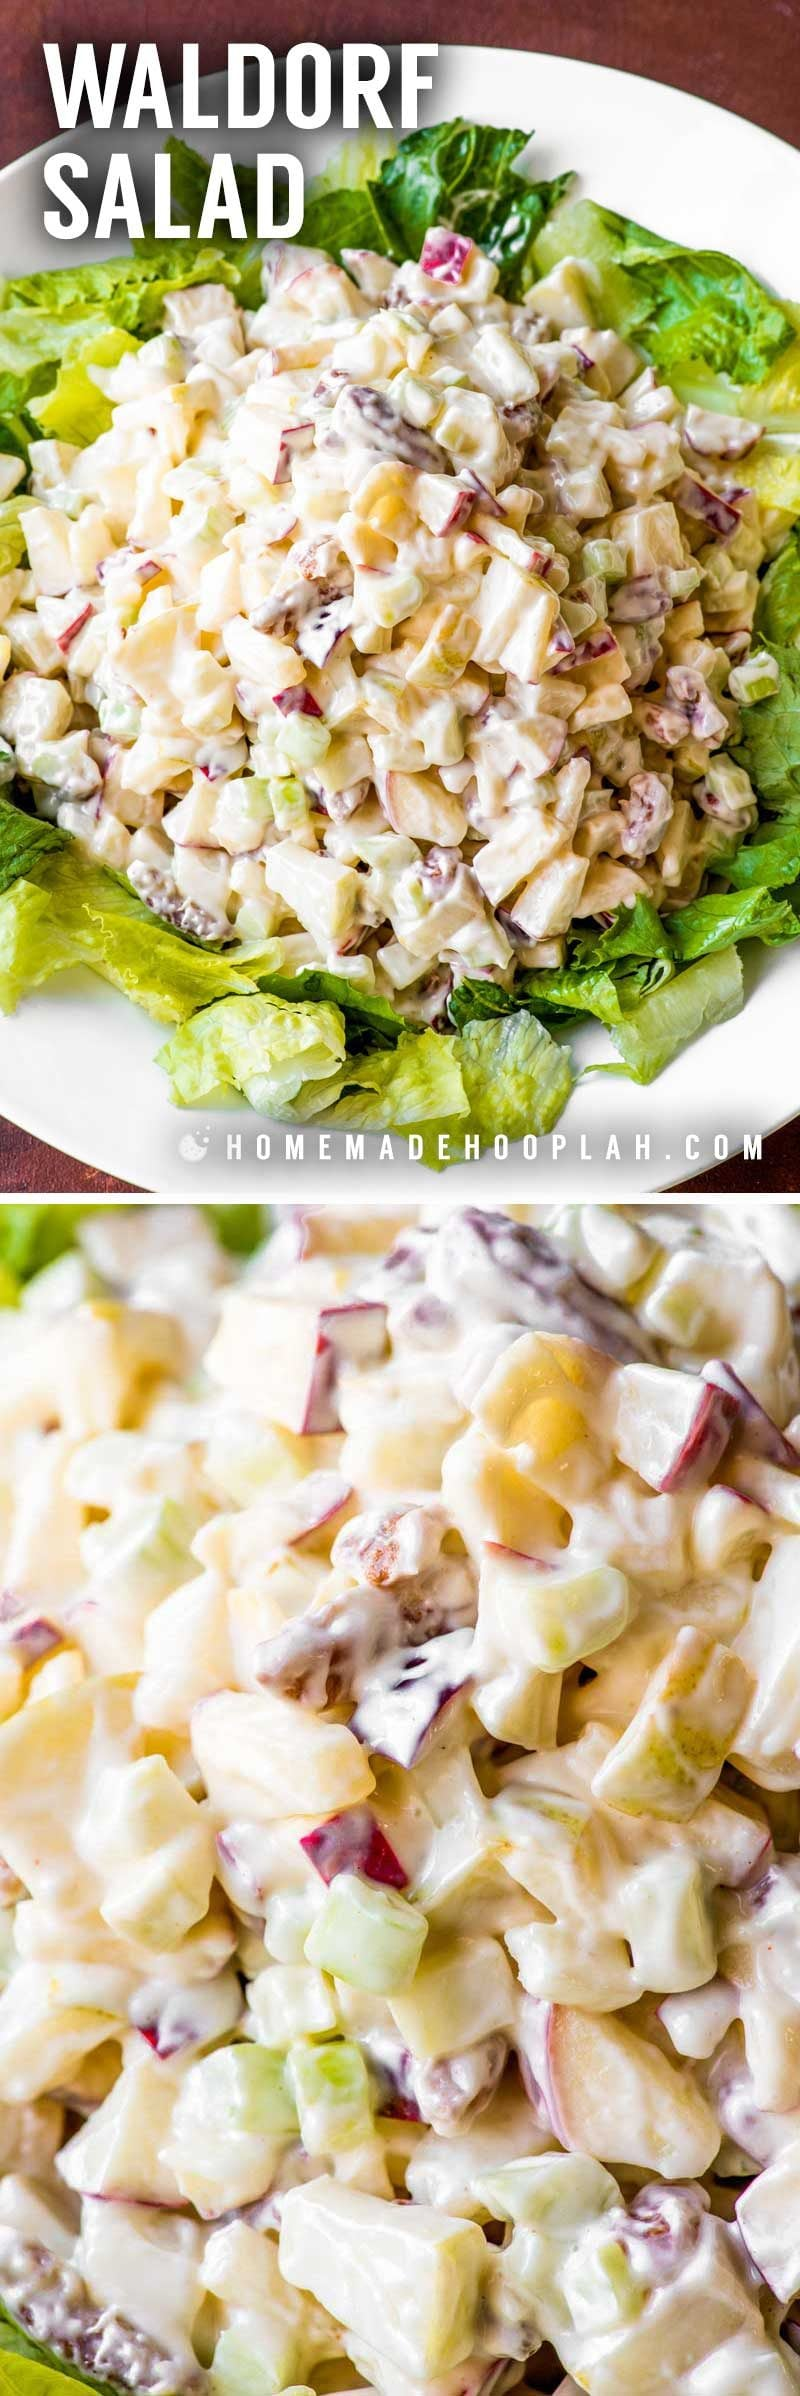 The best waldorf salad recipe out there.